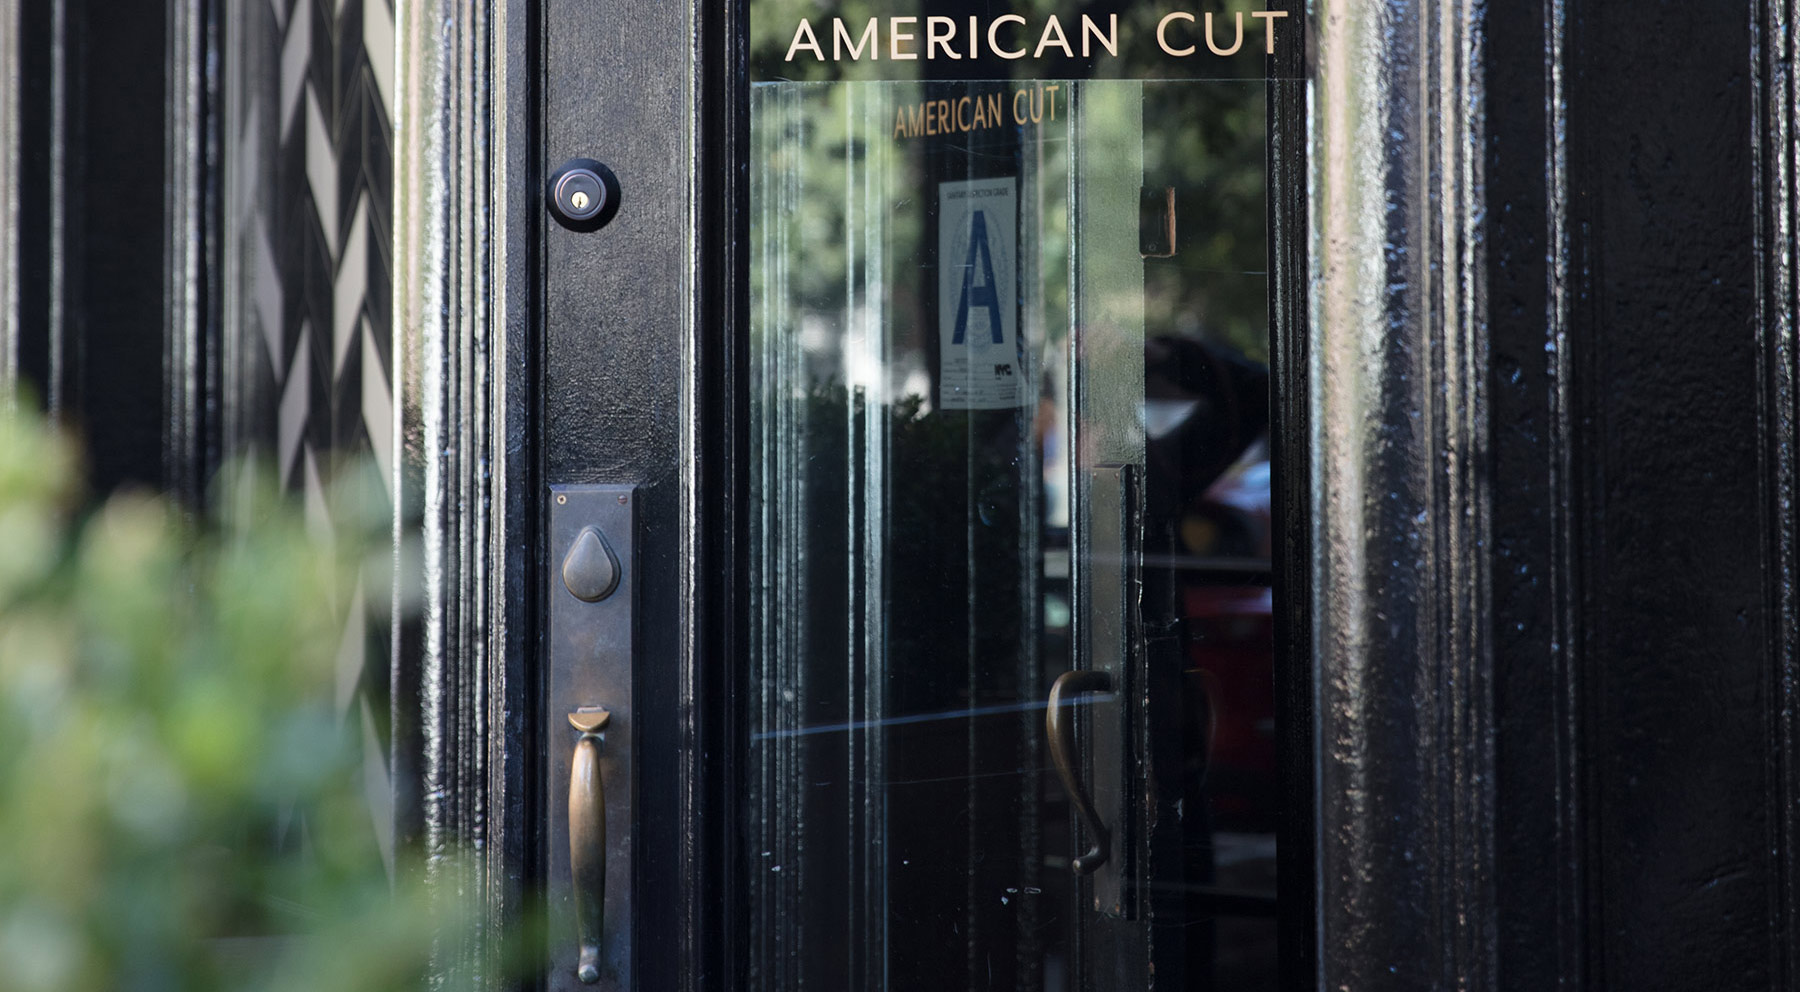 American Cut remembers and revitalizes the classic American steakhouse